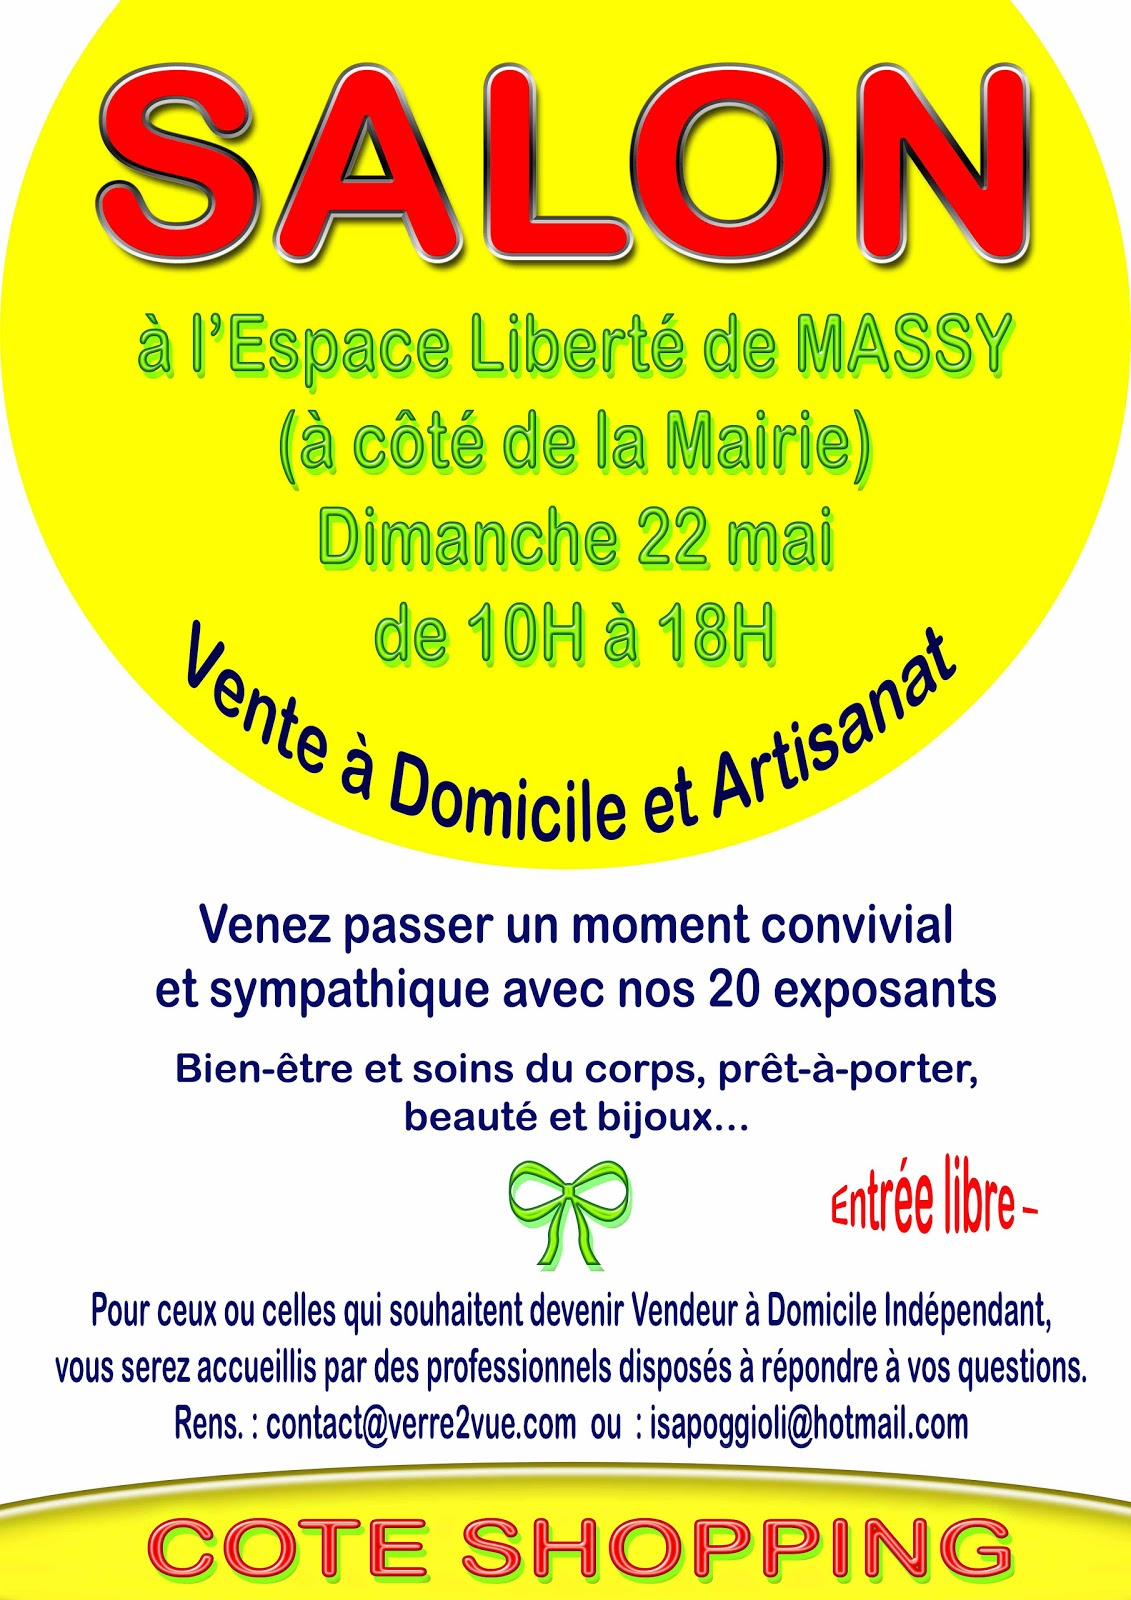 Les ateliers de mylou salon vdi massy dimanche 22 mai for Salon vdi